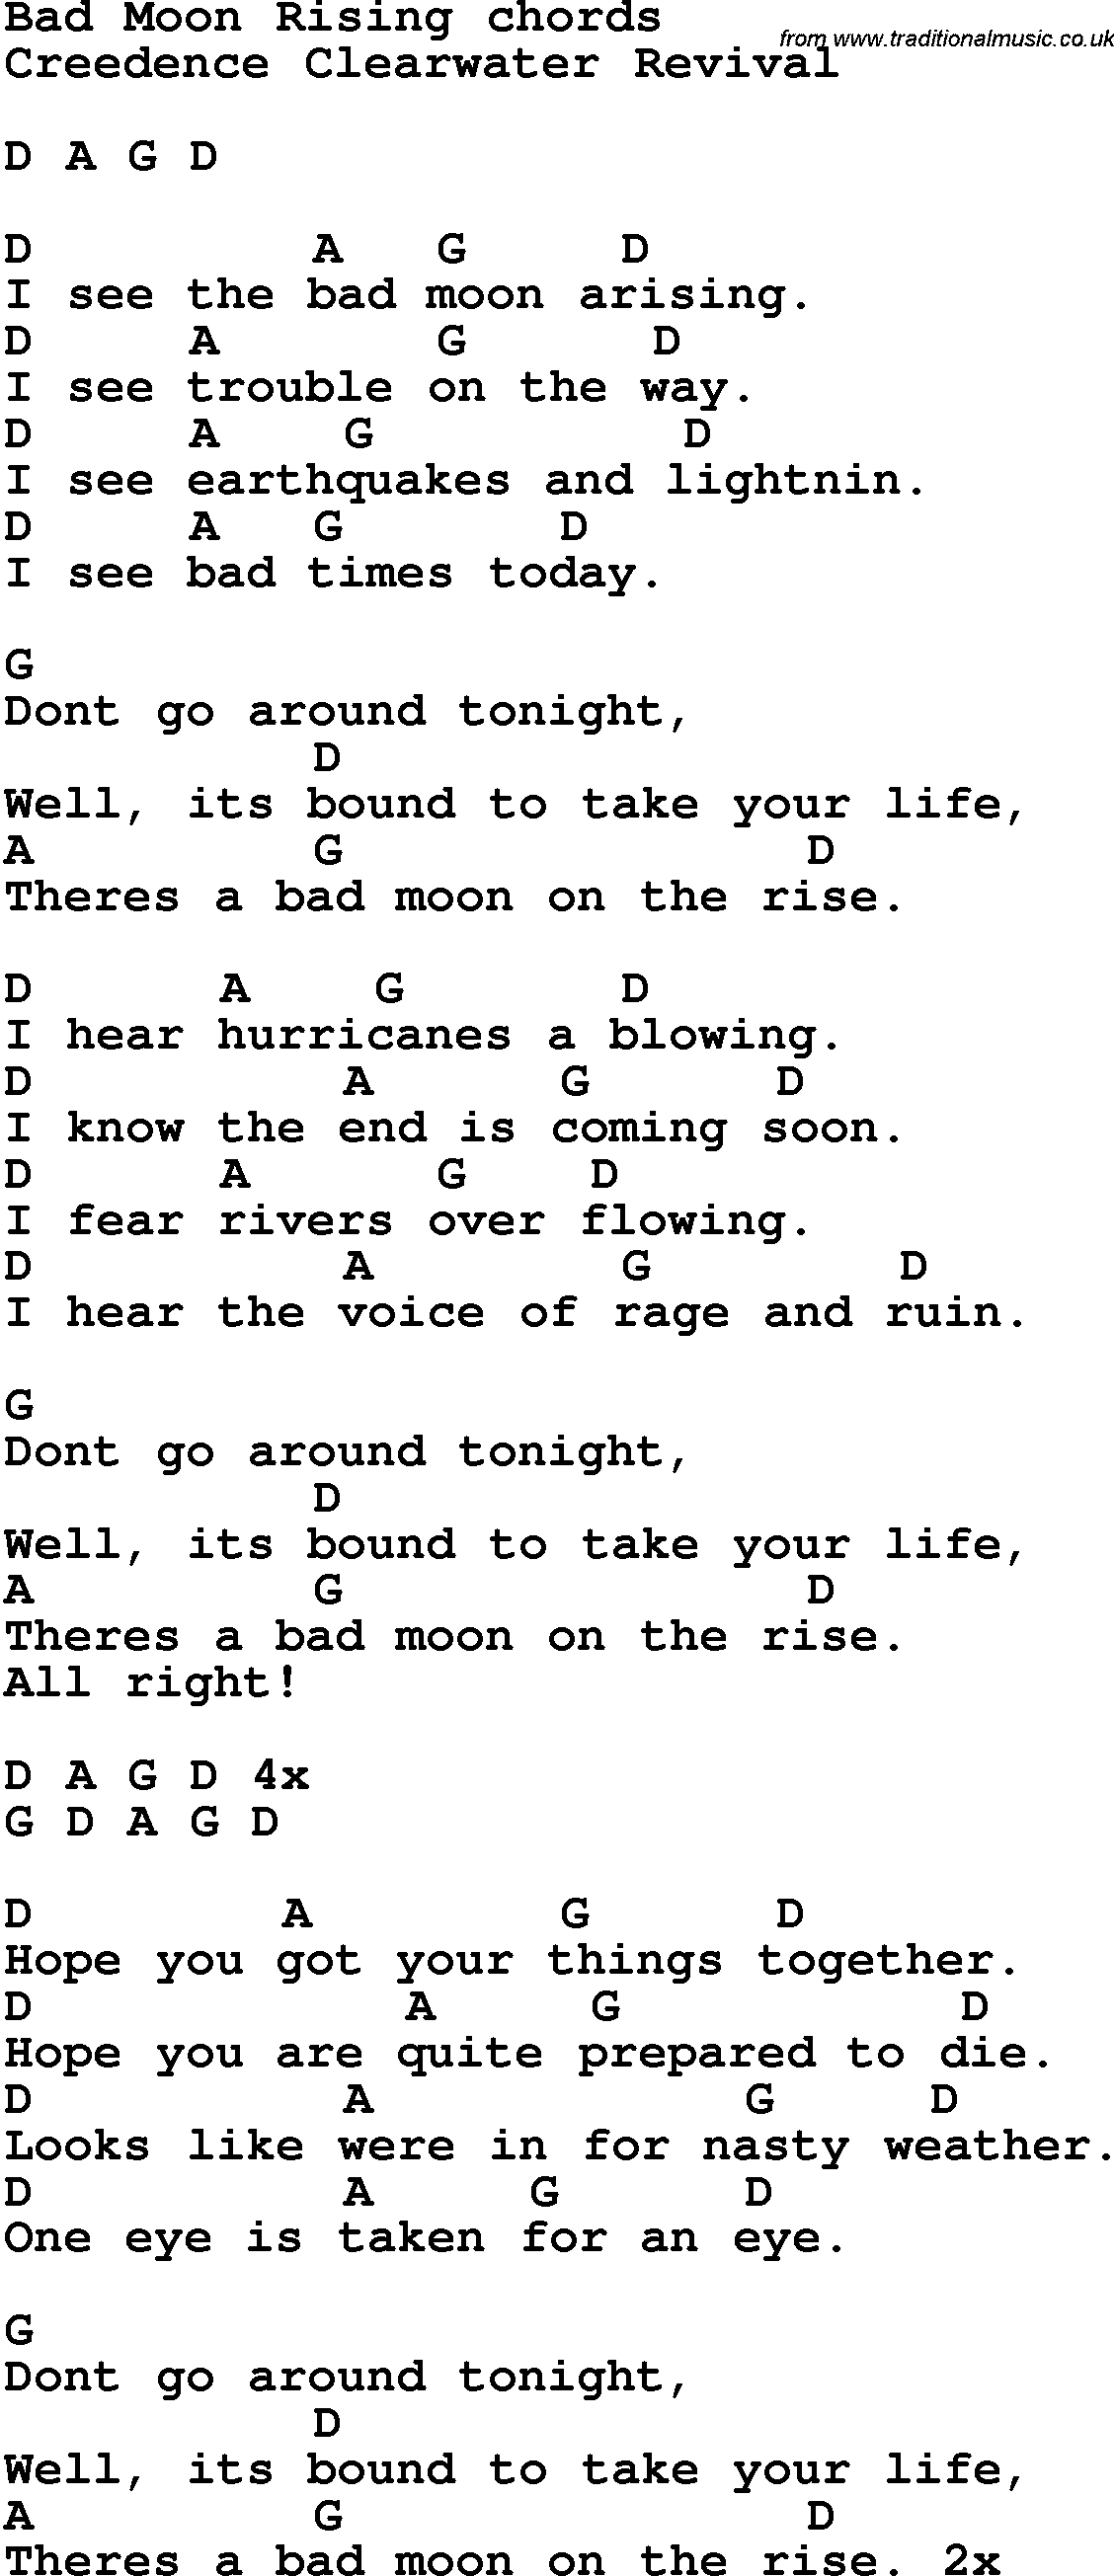 Song Lyrics With Guitar Chords For Bad Moon Rising | Music In 2019 - Free Printable Song Lyrics With Guitar Chords